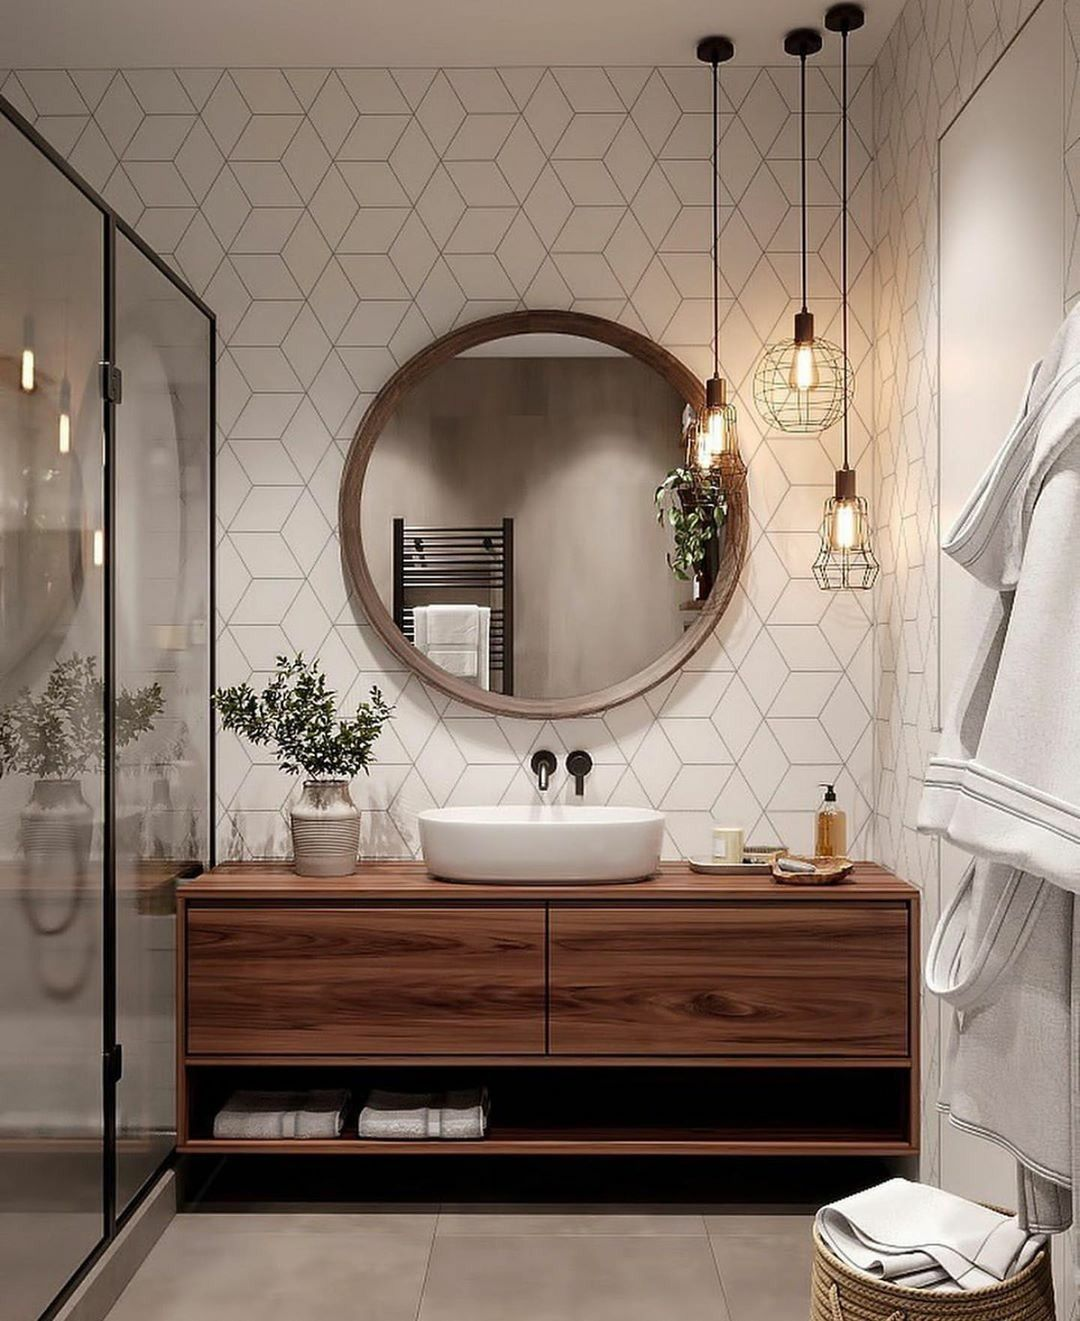 Bathroom Inspiration In 2020 Badezimmer Inspiration Bad Inspiration Gemutliches Badezimmer